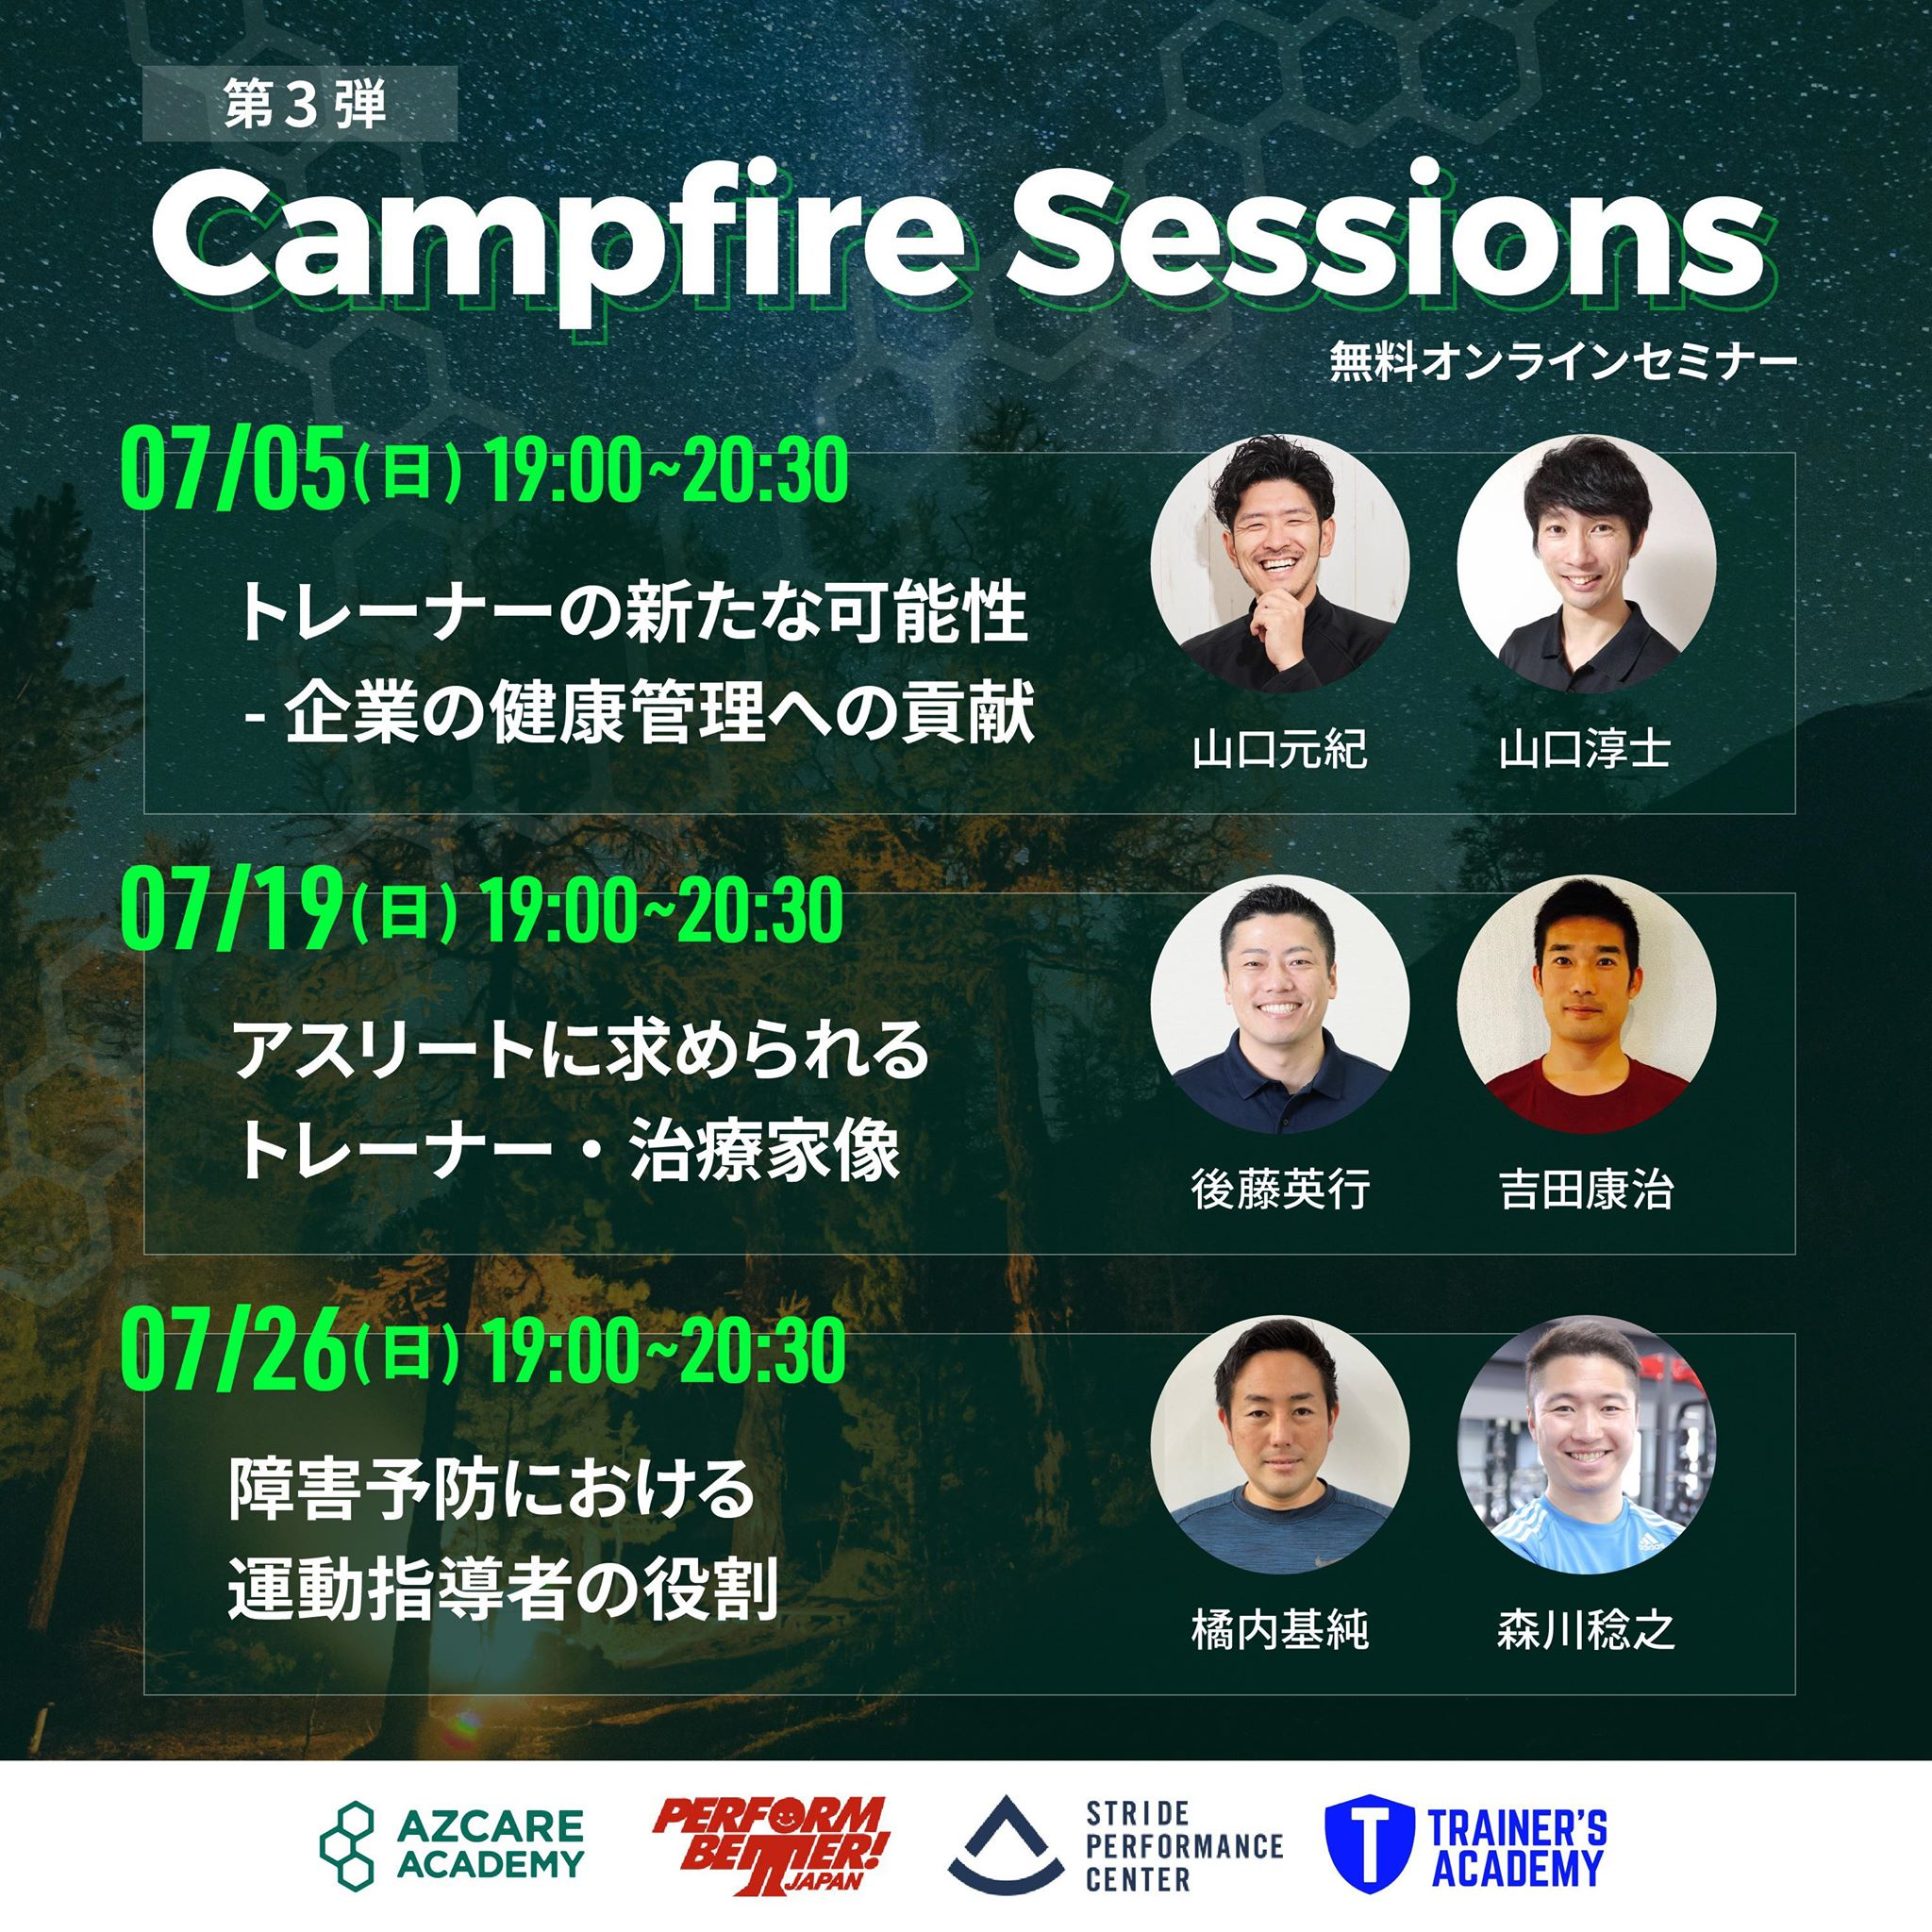 Campfire Sessions  x Trainer's Academy